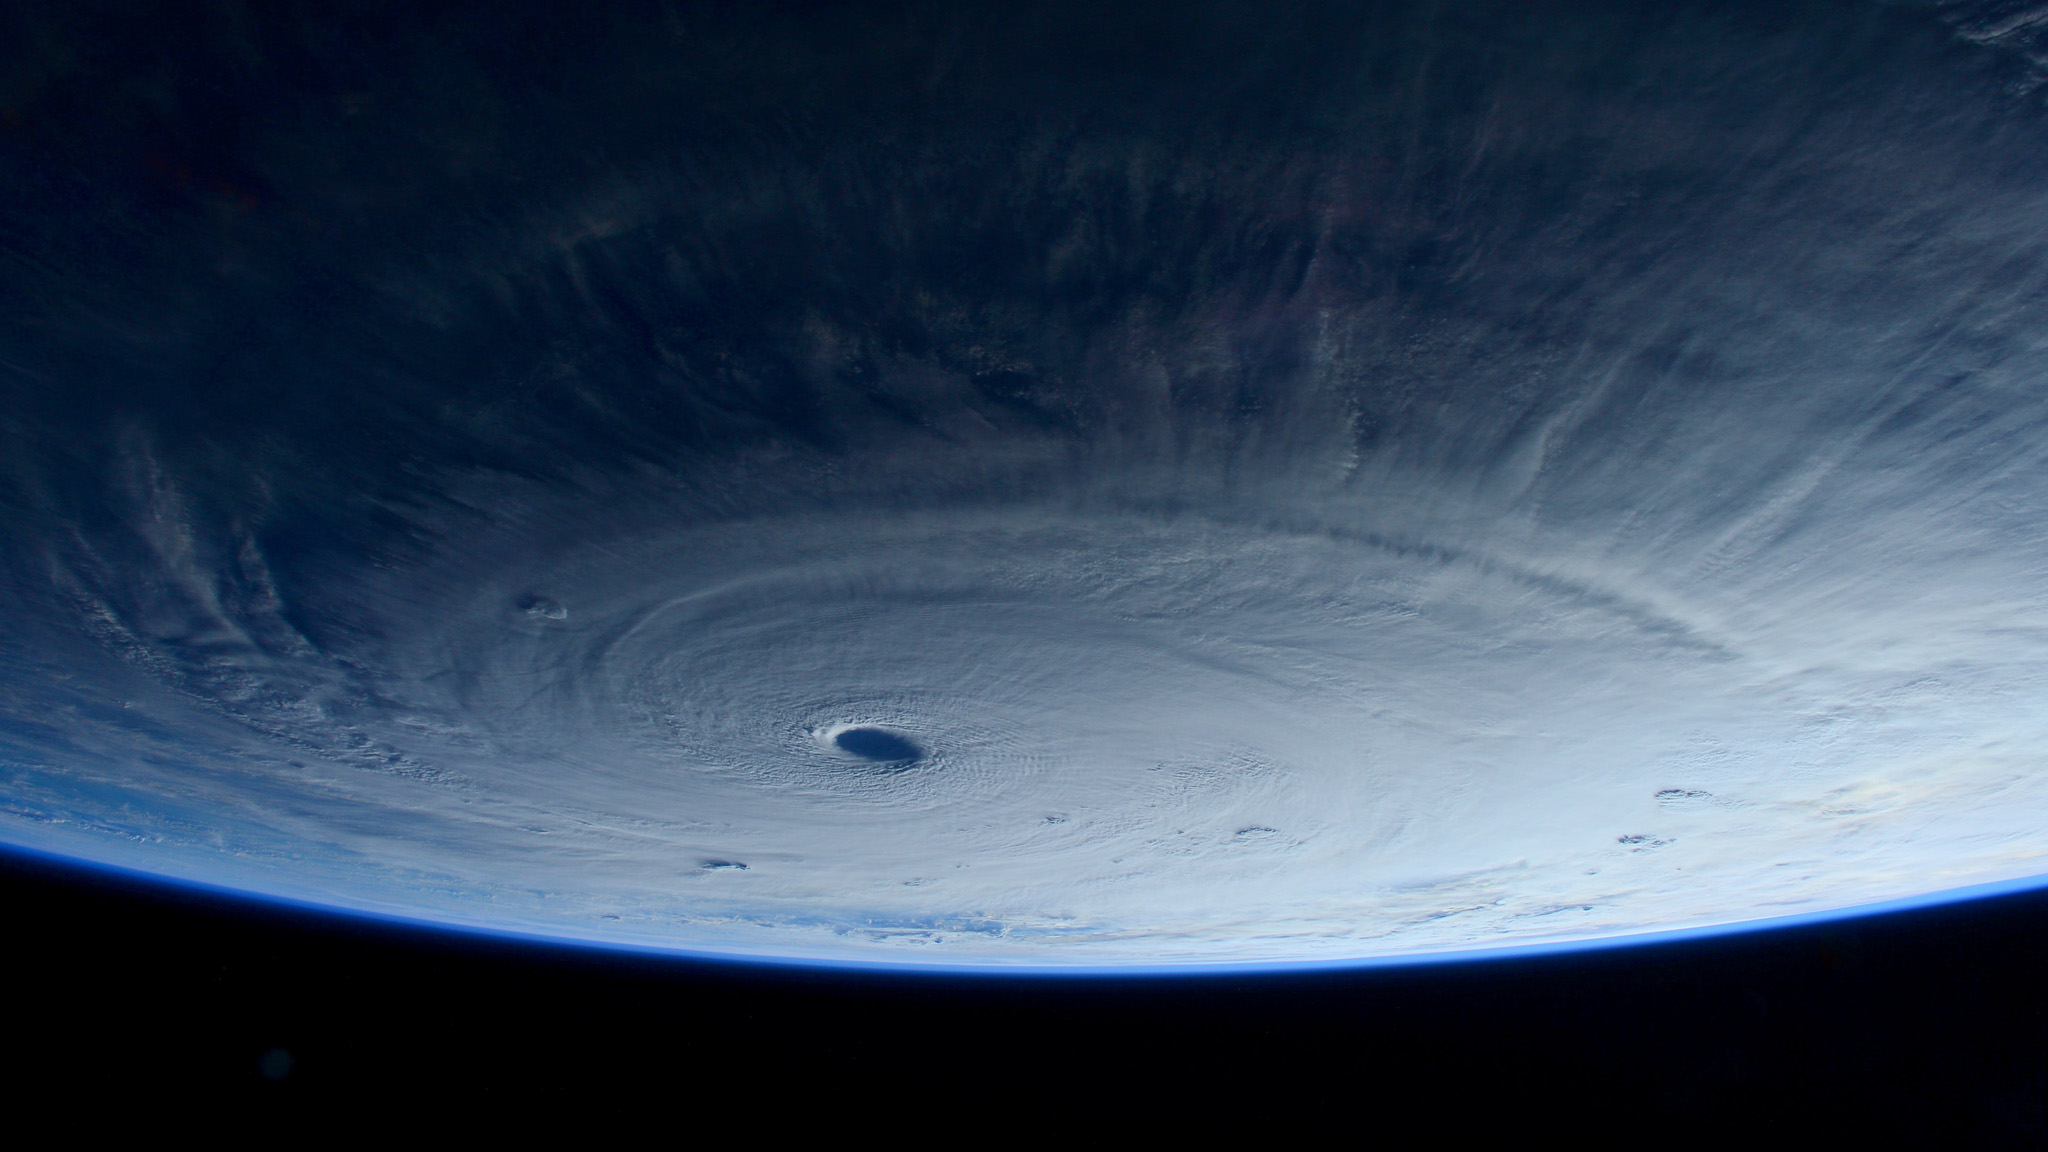 This image taken Tuesday March 31, 2015 shows Typhoon Maysak taken by astronaut Samantha Cristoforetti from the International Space Station. The Pacific Daily News newspaper in Guam reports the storm was upgraded Tuesday to a super typhoon with winds of 150 mph and was moving west-northwest at 15 mph. Officials say super Typhoon Maysak is expected to significantly weaken before reaching the Philippines around Sunday. (AP Photo/NASA, Samantha Cristoforetti) .